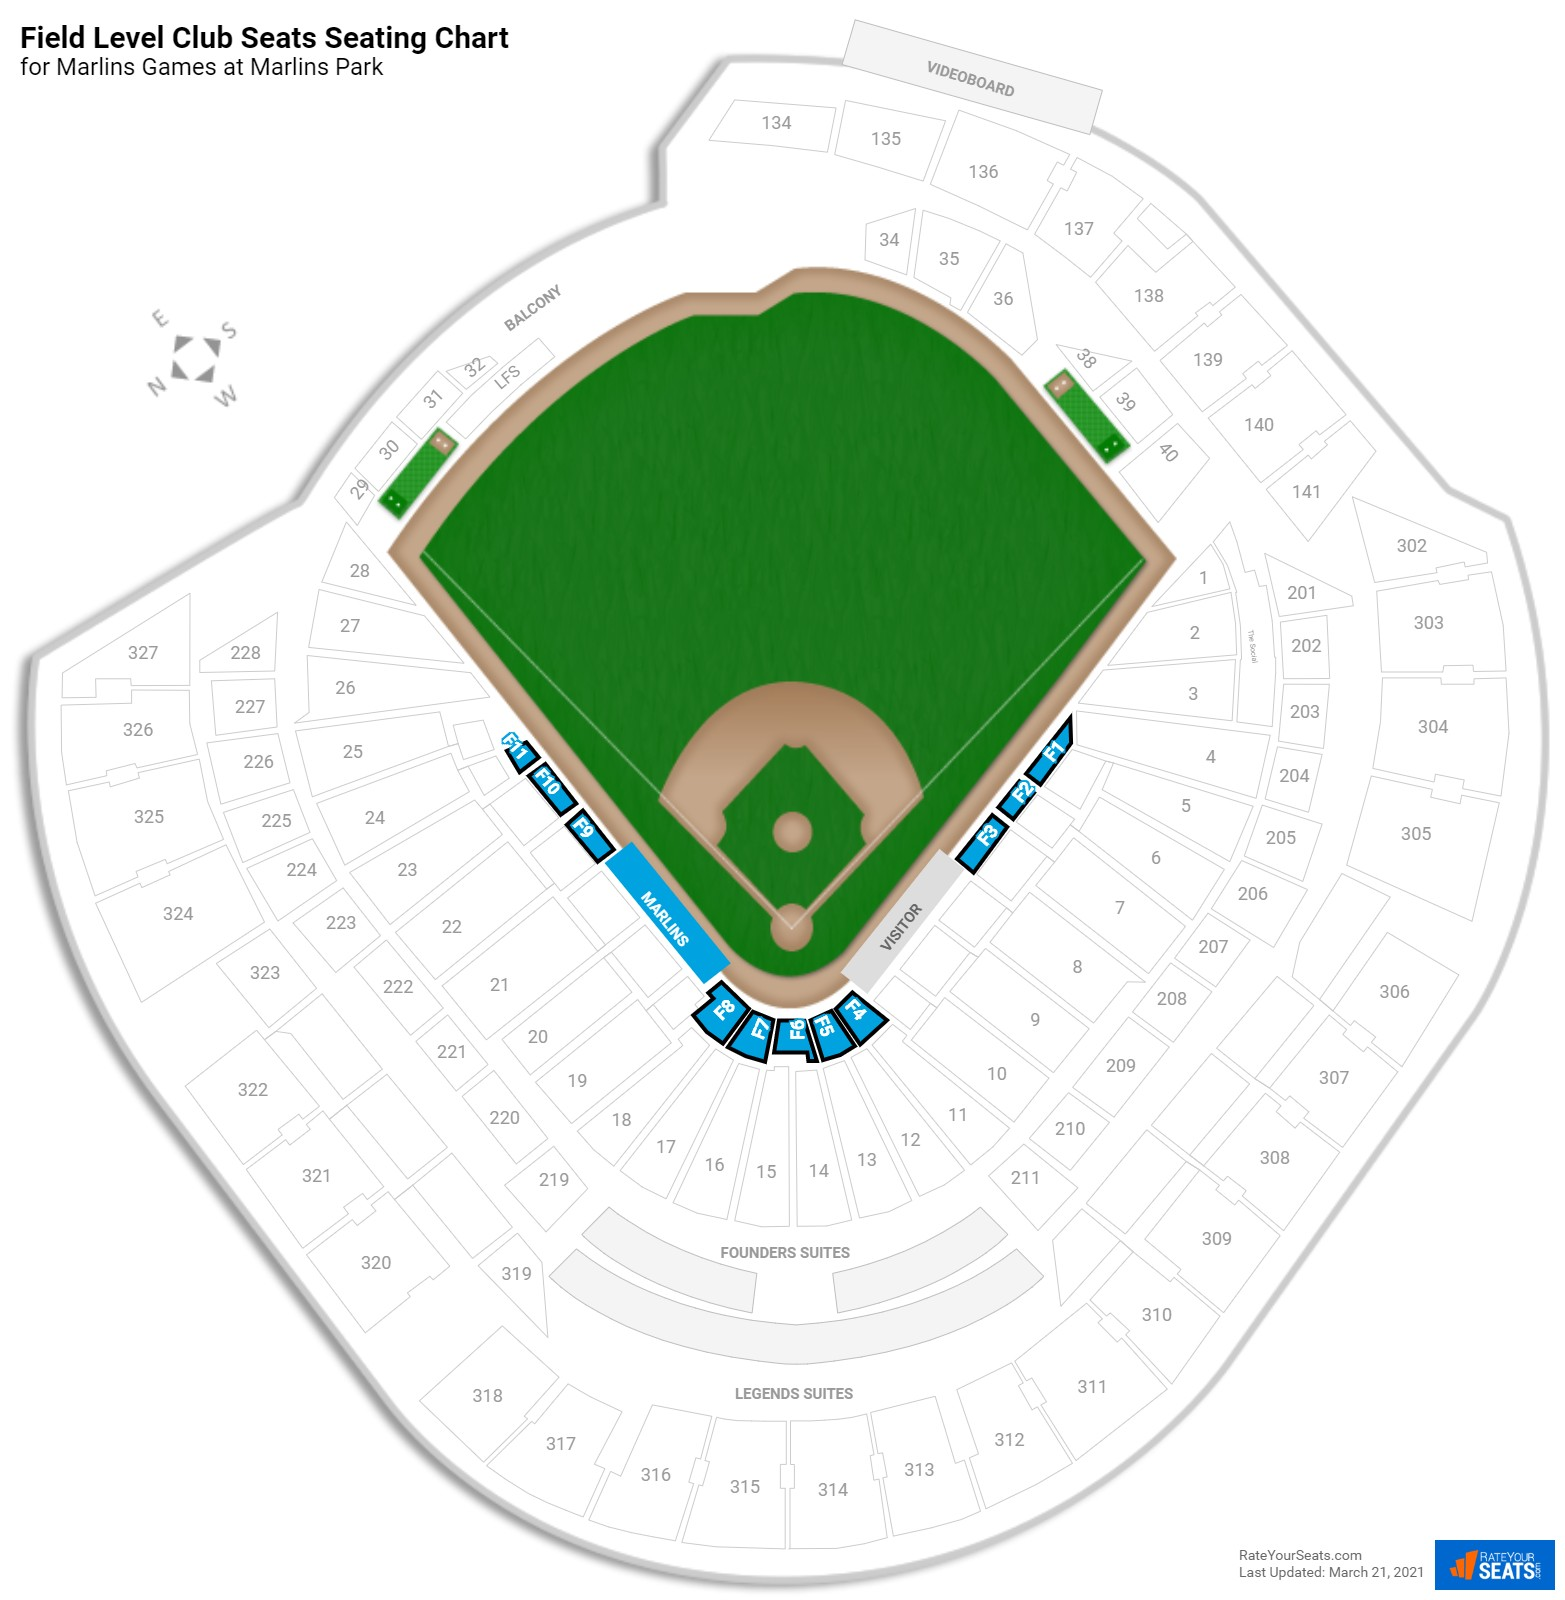 Marlins Park Field Level Infield seating chart